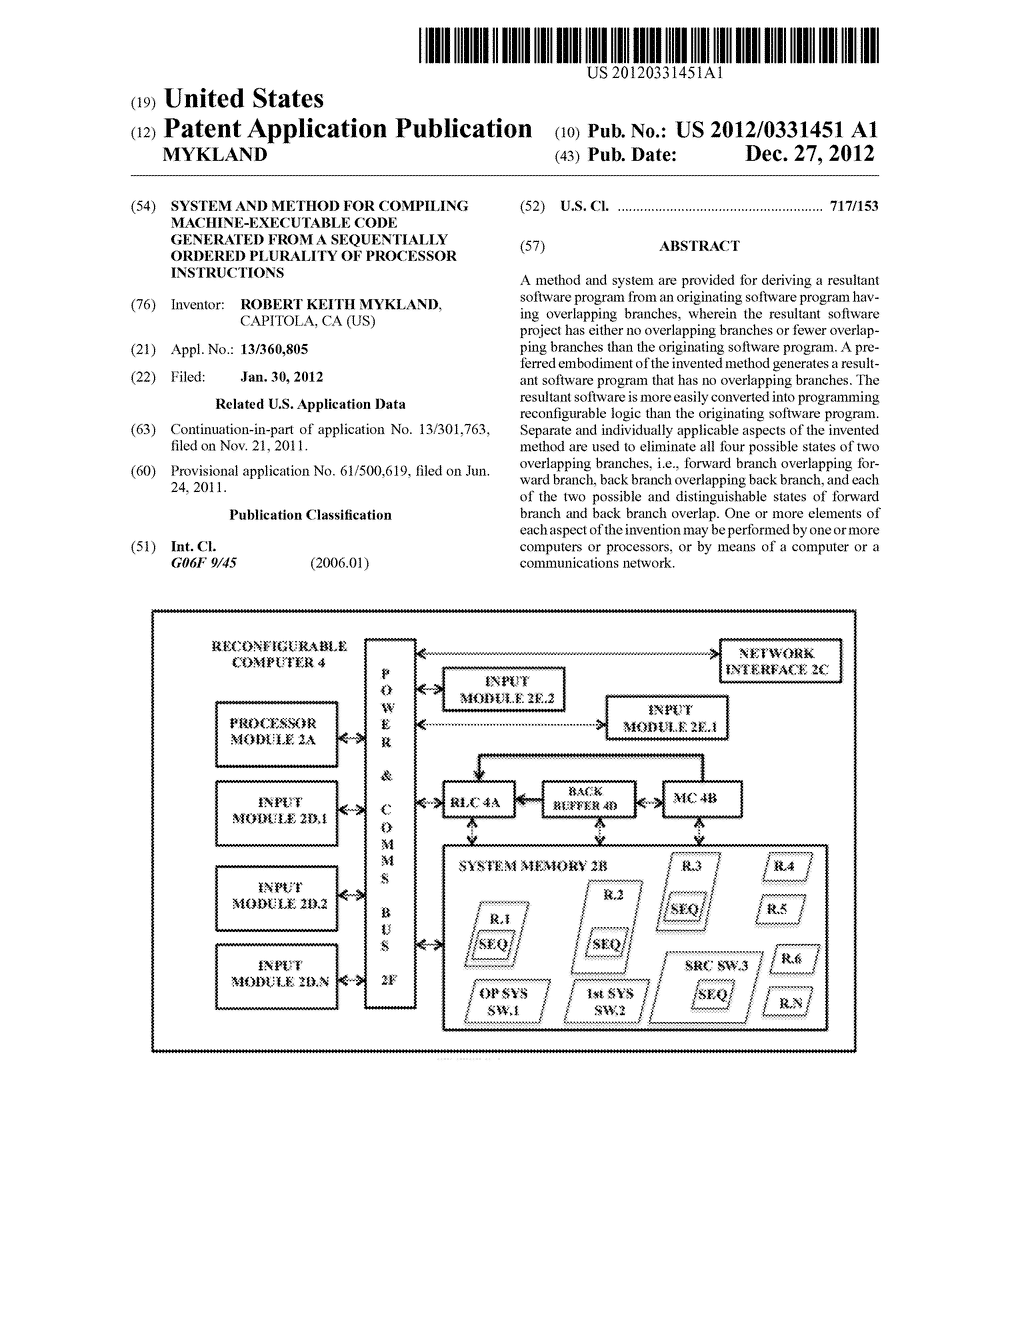 SYSTEM AND METHOD FOR COMPILING MACHINE-EXECUTABLE CODE GENERATED FROM A     SEQUENTIALLY ORDERED PLURALITY OF PROCESSOR INSTRUCTIONS - diagram, schematic, and image 01